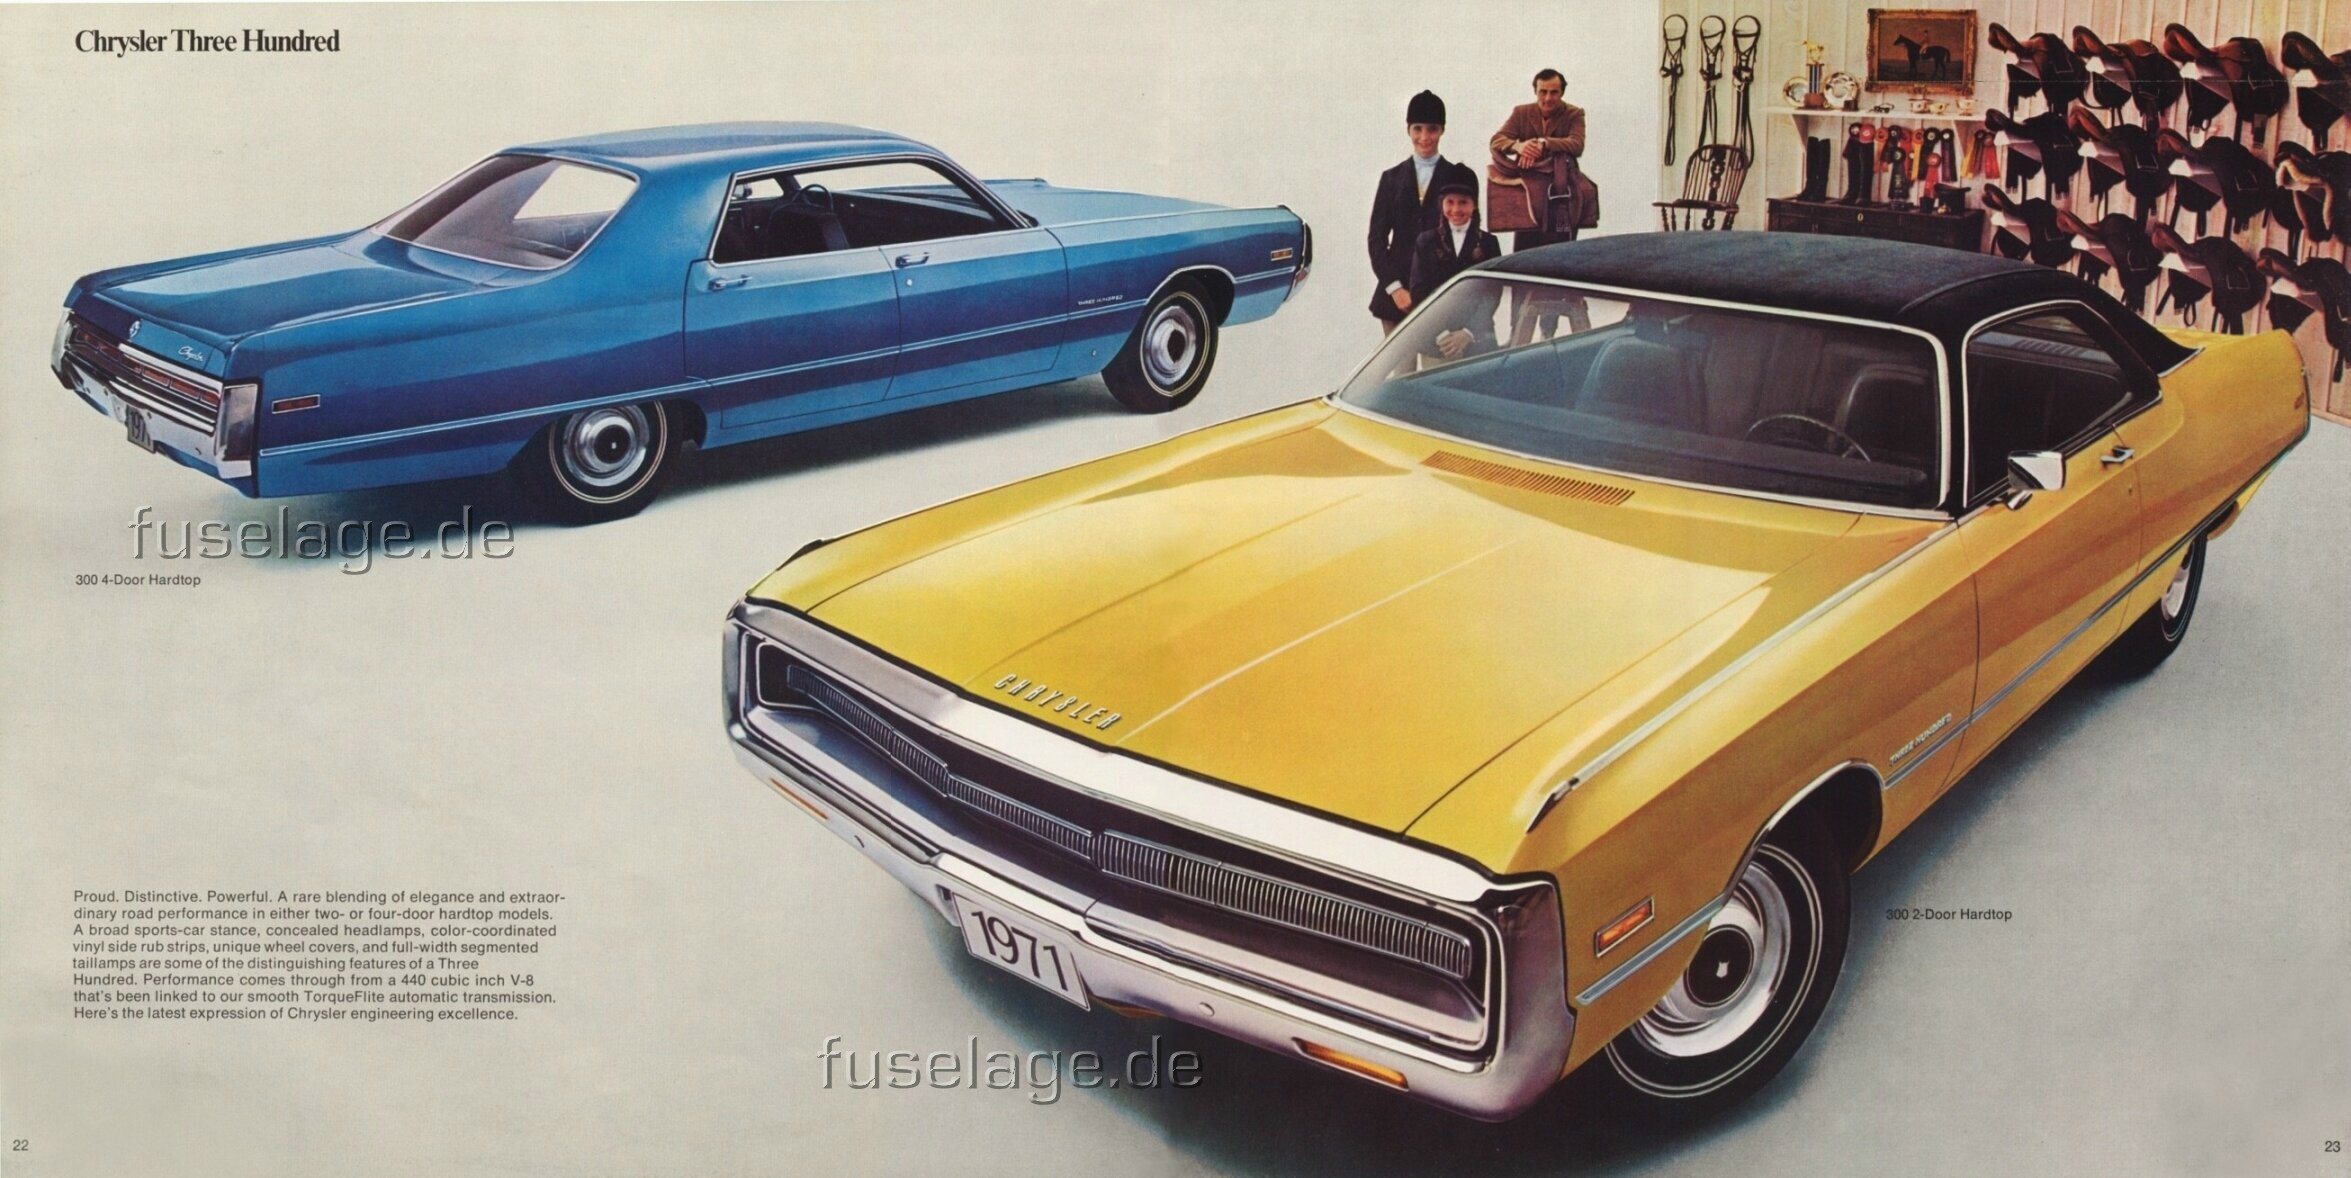 1971 Chrysler 300 4-door and